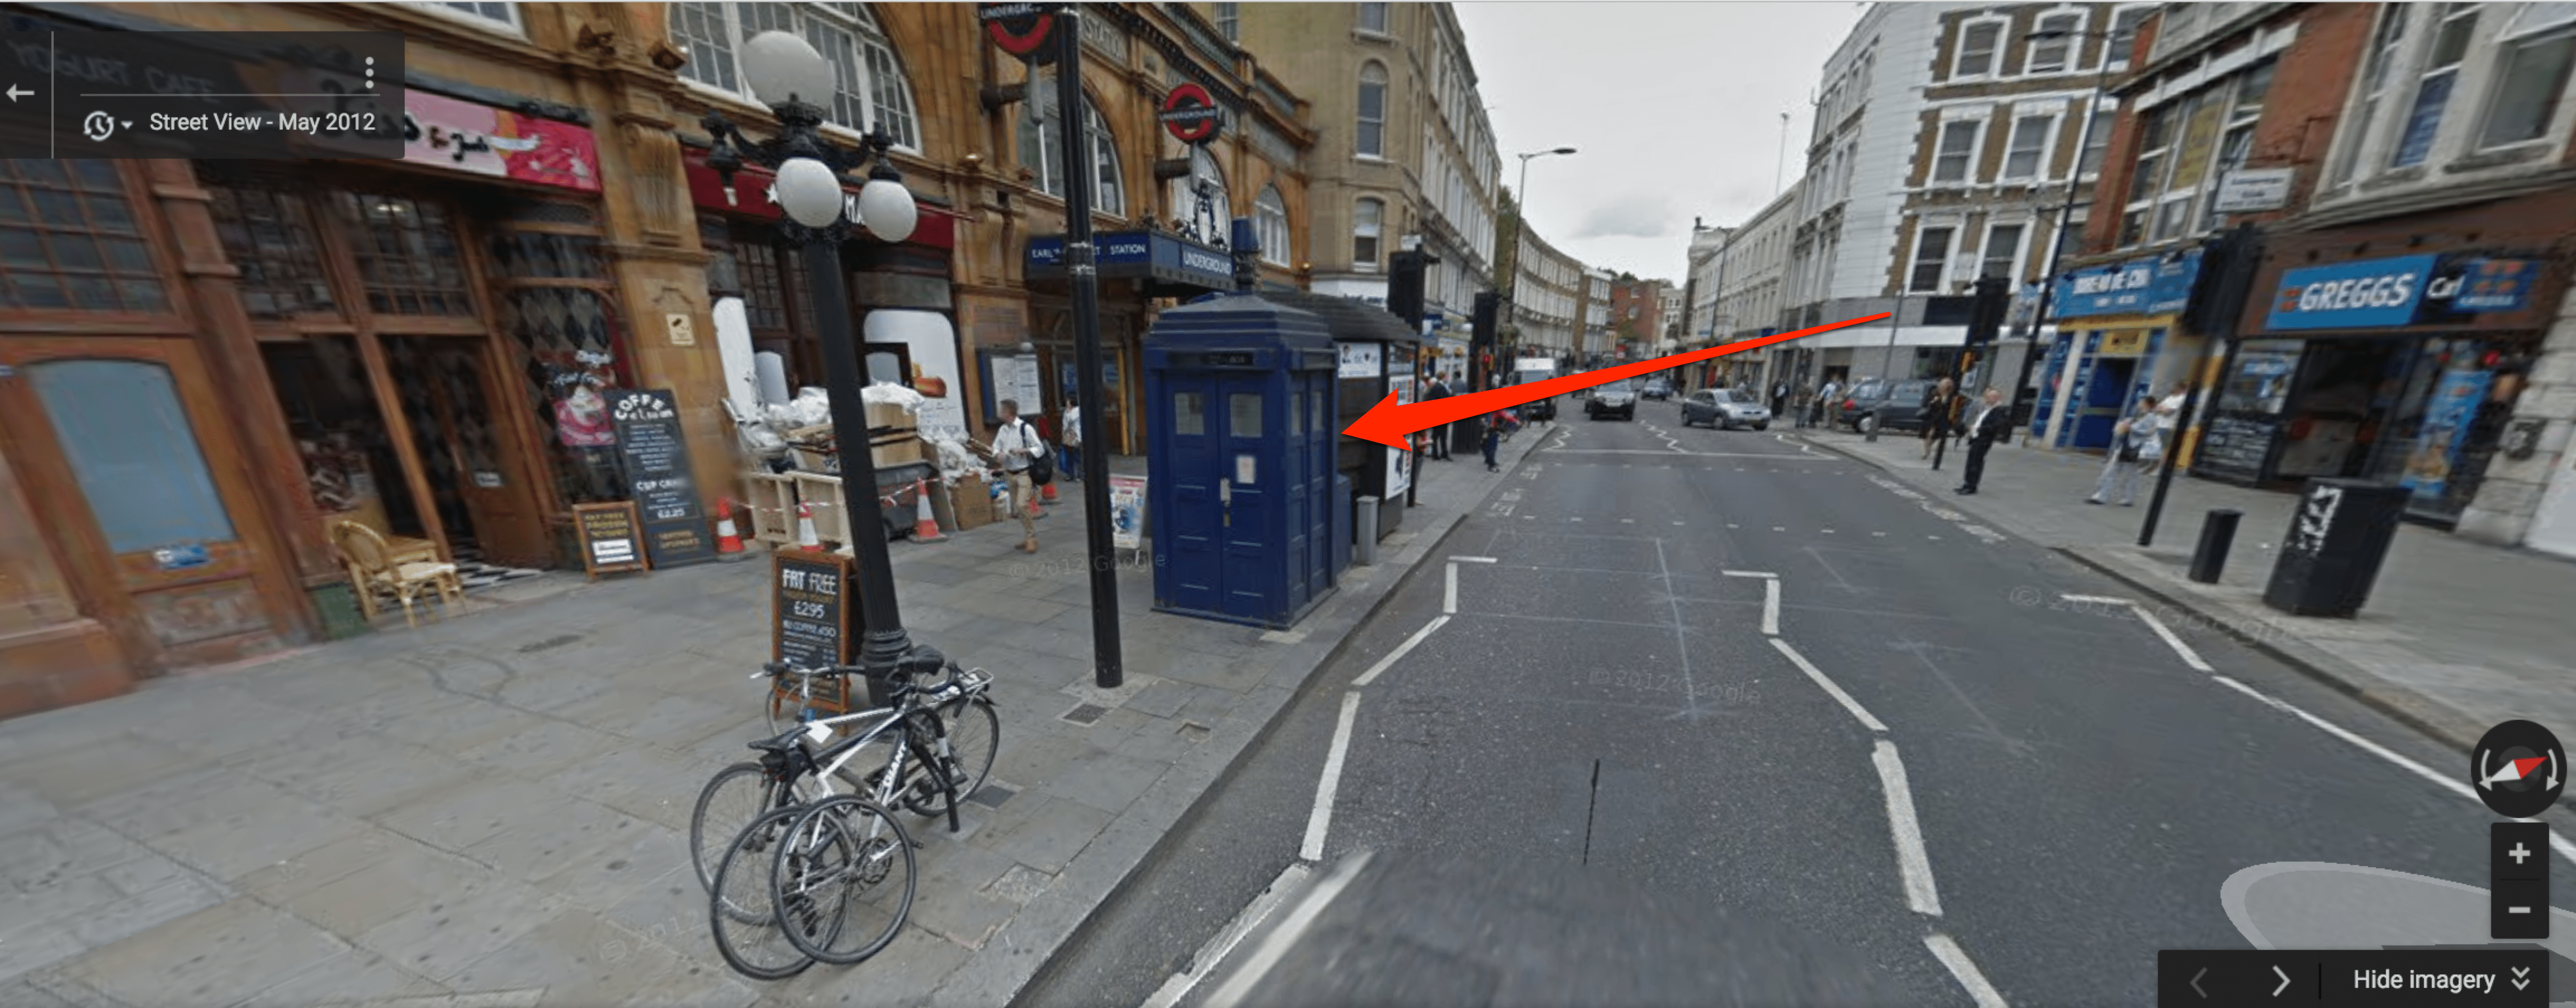 How To Find The Doctor Who Tardis In Google Maps - Google maps street view